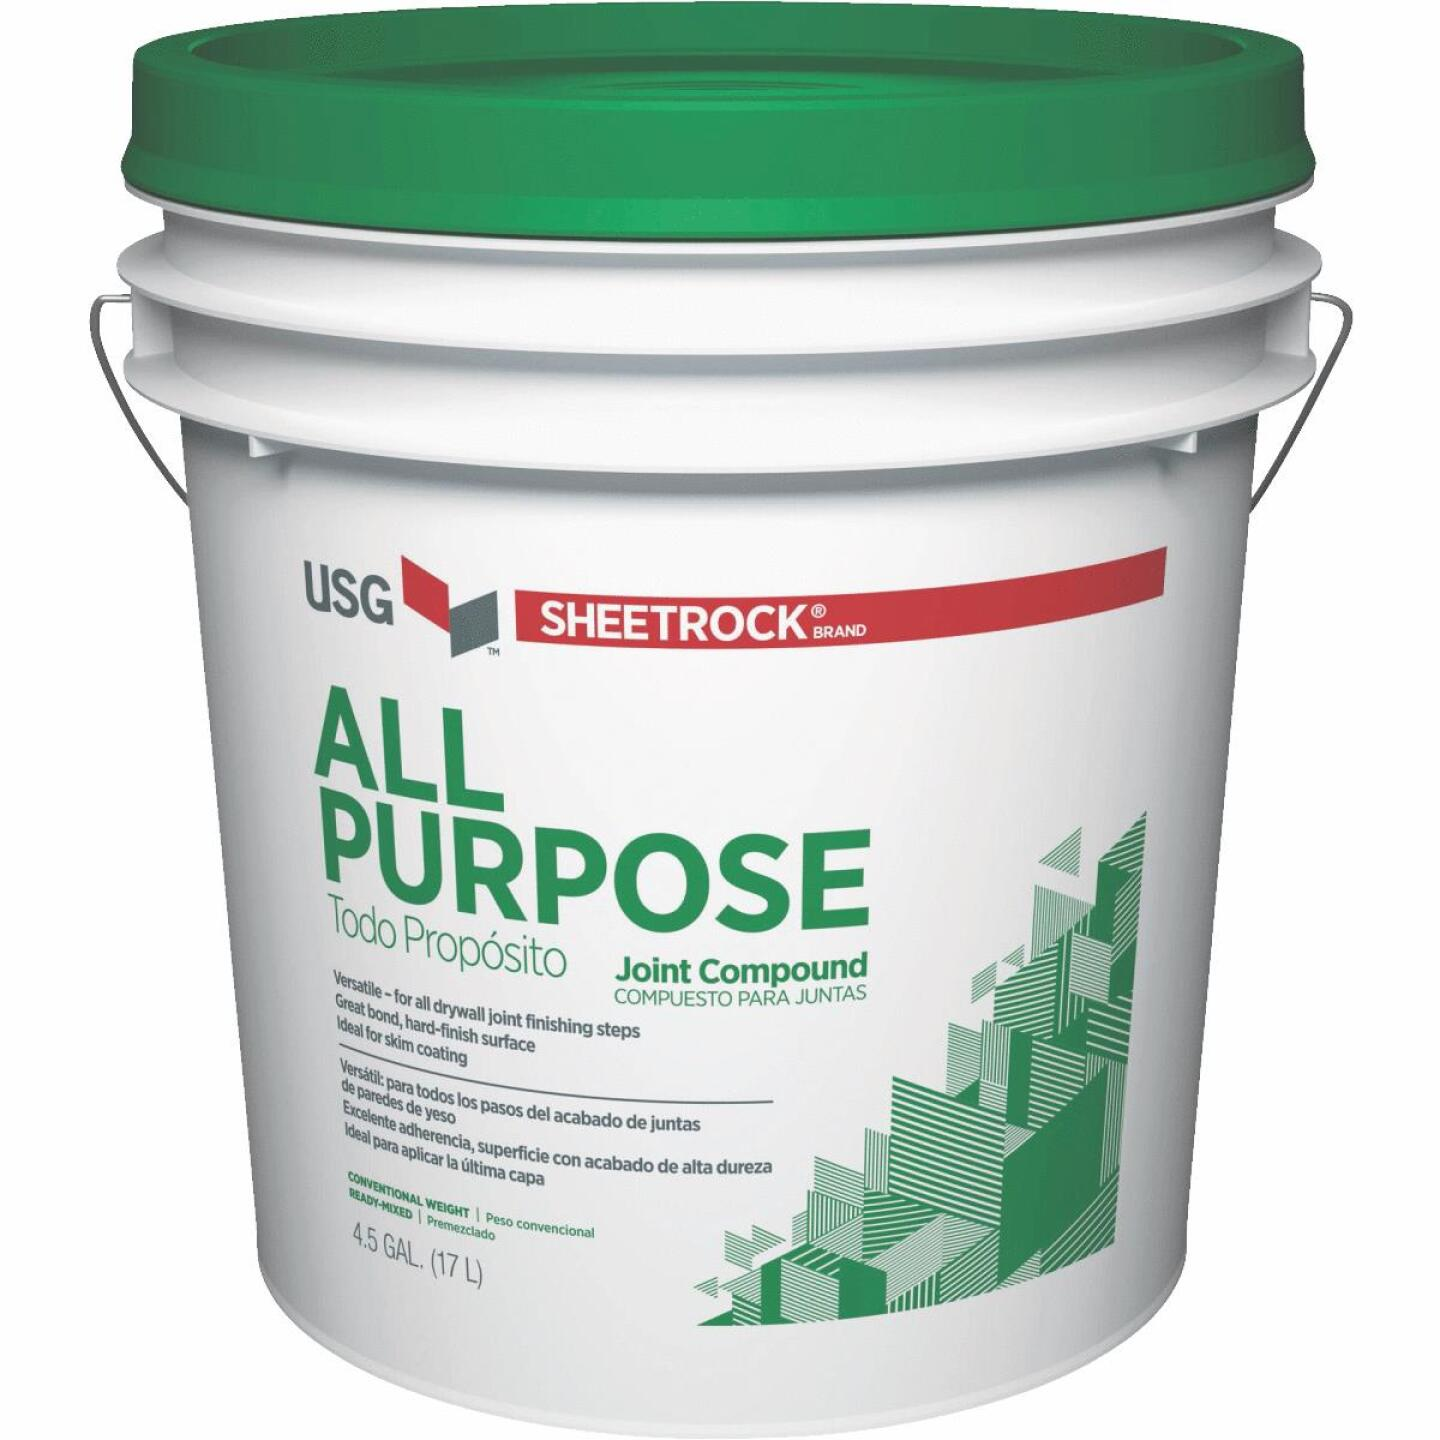 Sheetrock 4.5 Gal. Pre-Mixed All-Purpose Drywall Joint Compound Image 1